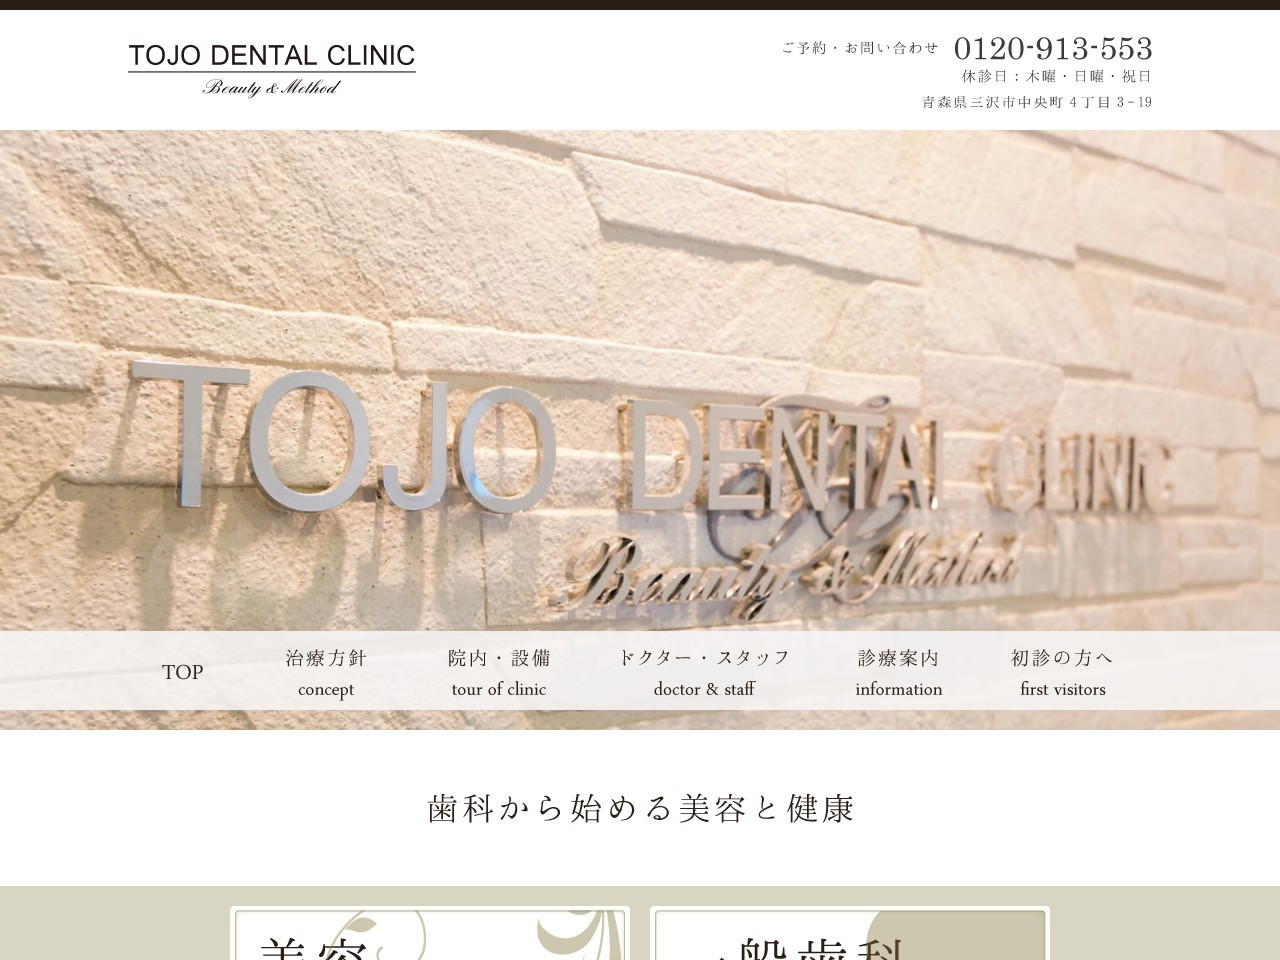 TOJO-DENTAL-CLINIC BEAUTY&METHOD (青森県三沢市)